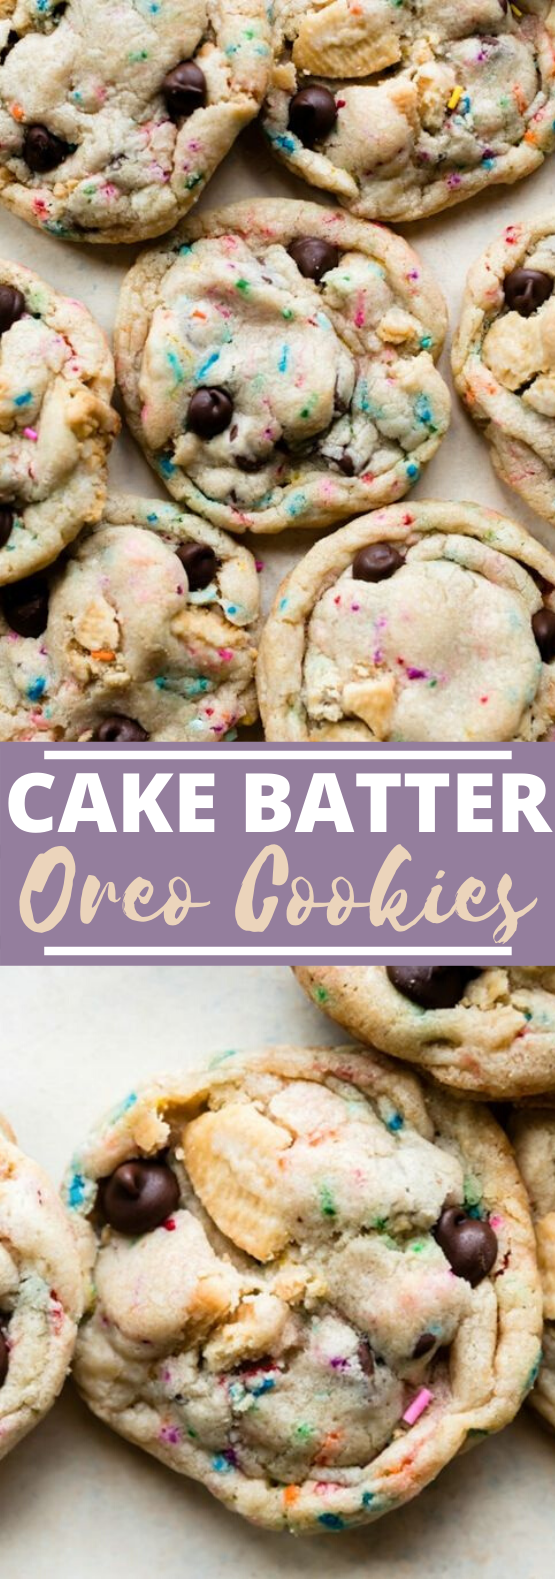 Cake Batter Oreo Cookies #cookies #desserts #baking #chocolatechip #easy